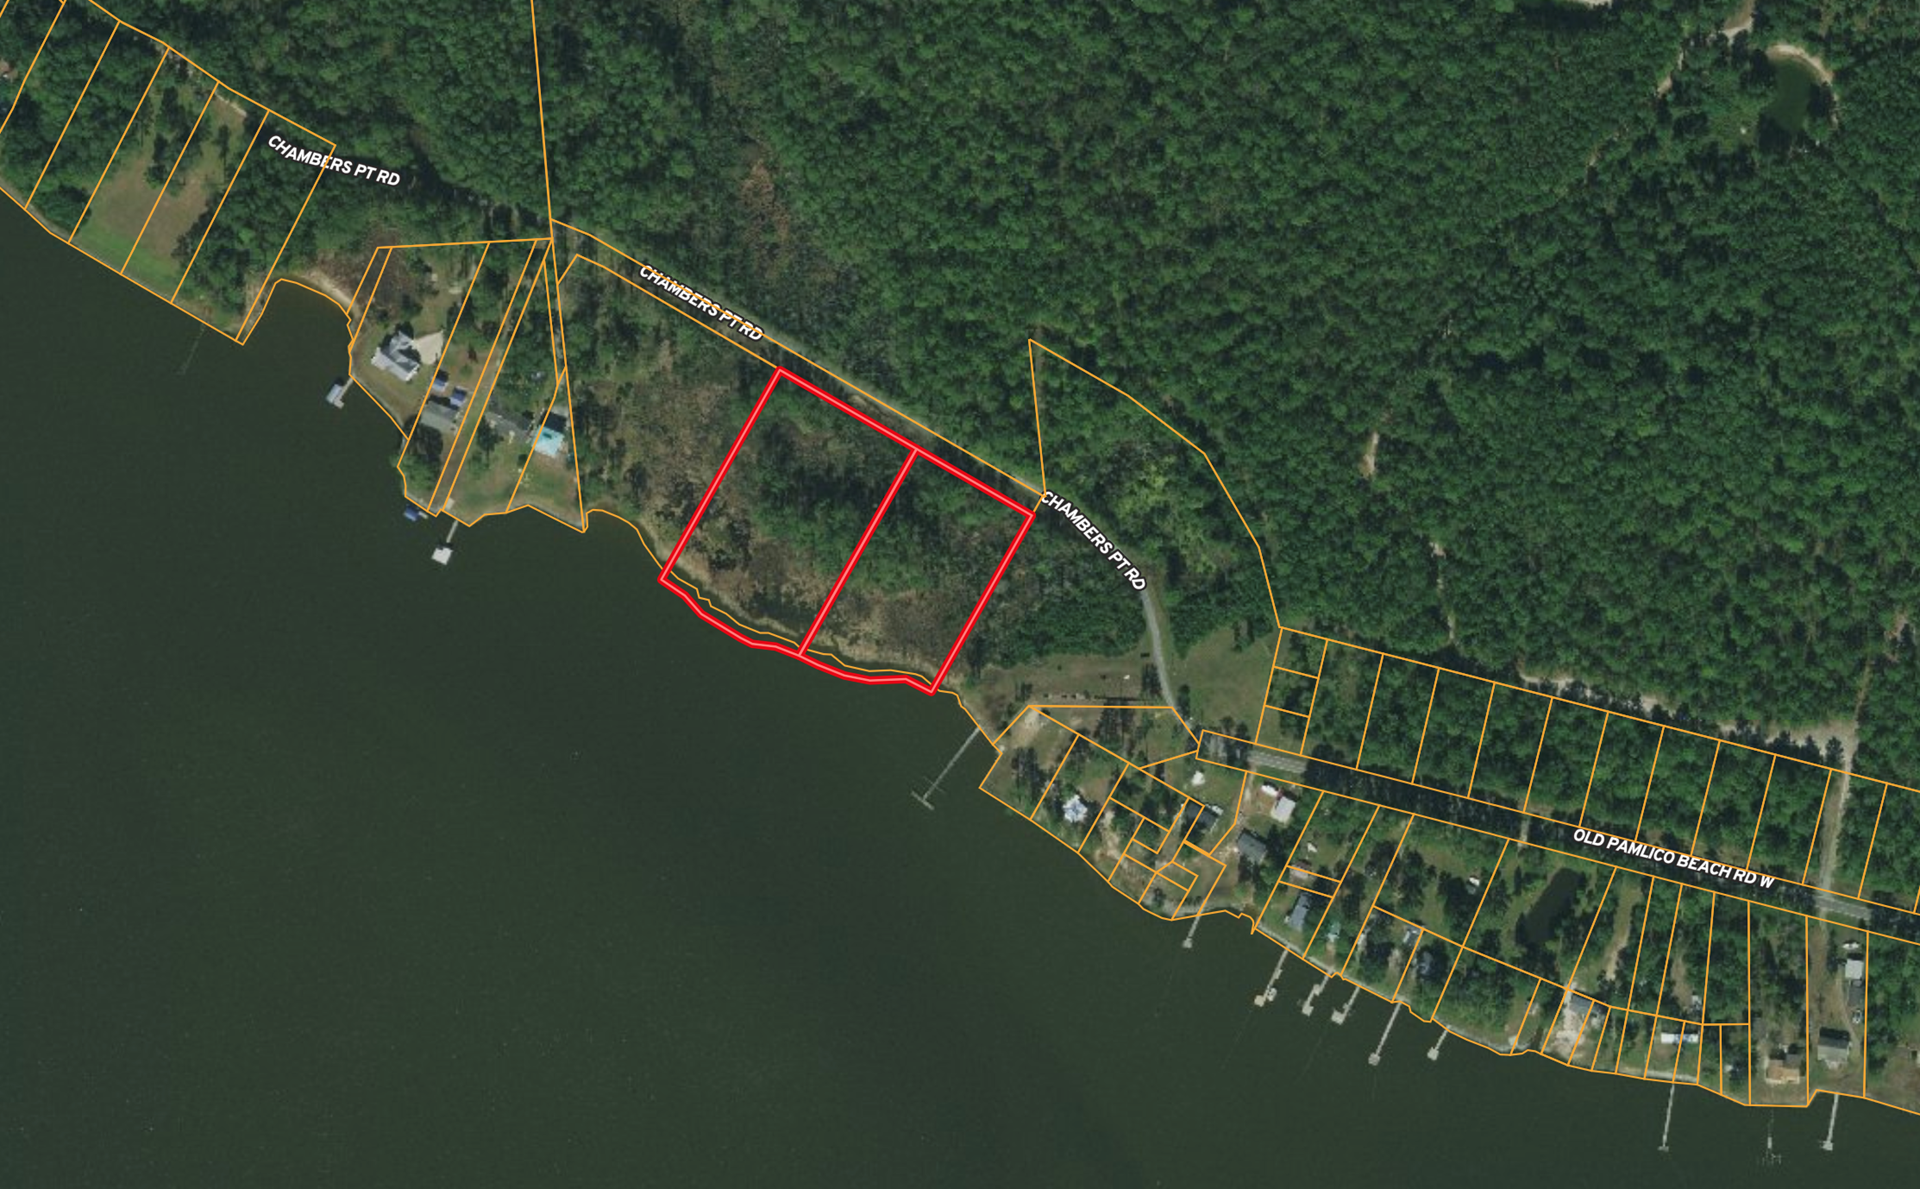 Waterfront property for sale in Beaufort County, NC